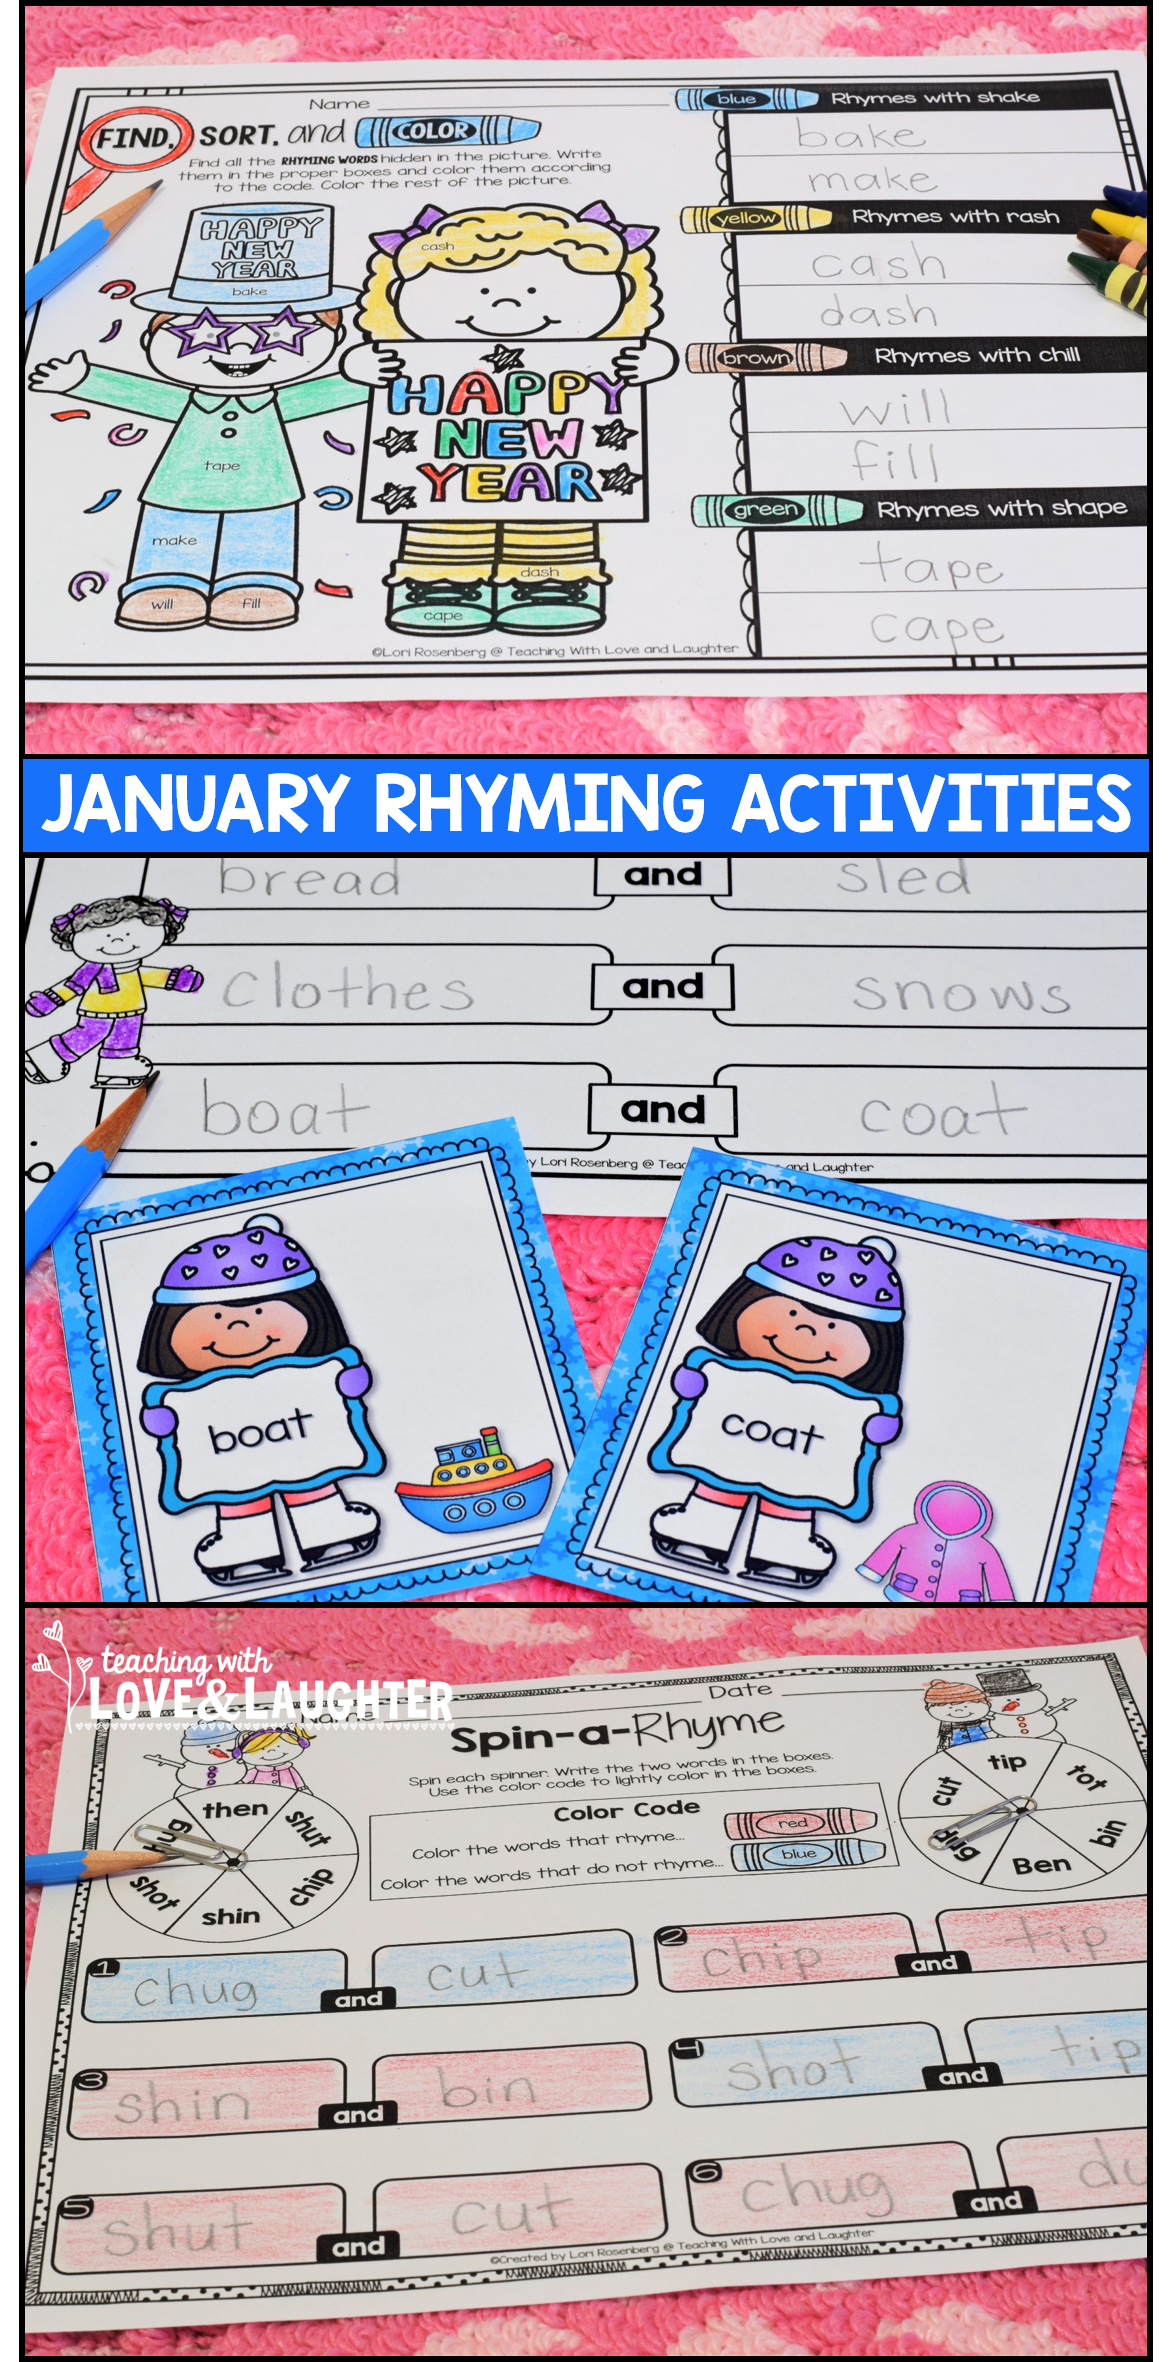 January Rhyming Activities With Images